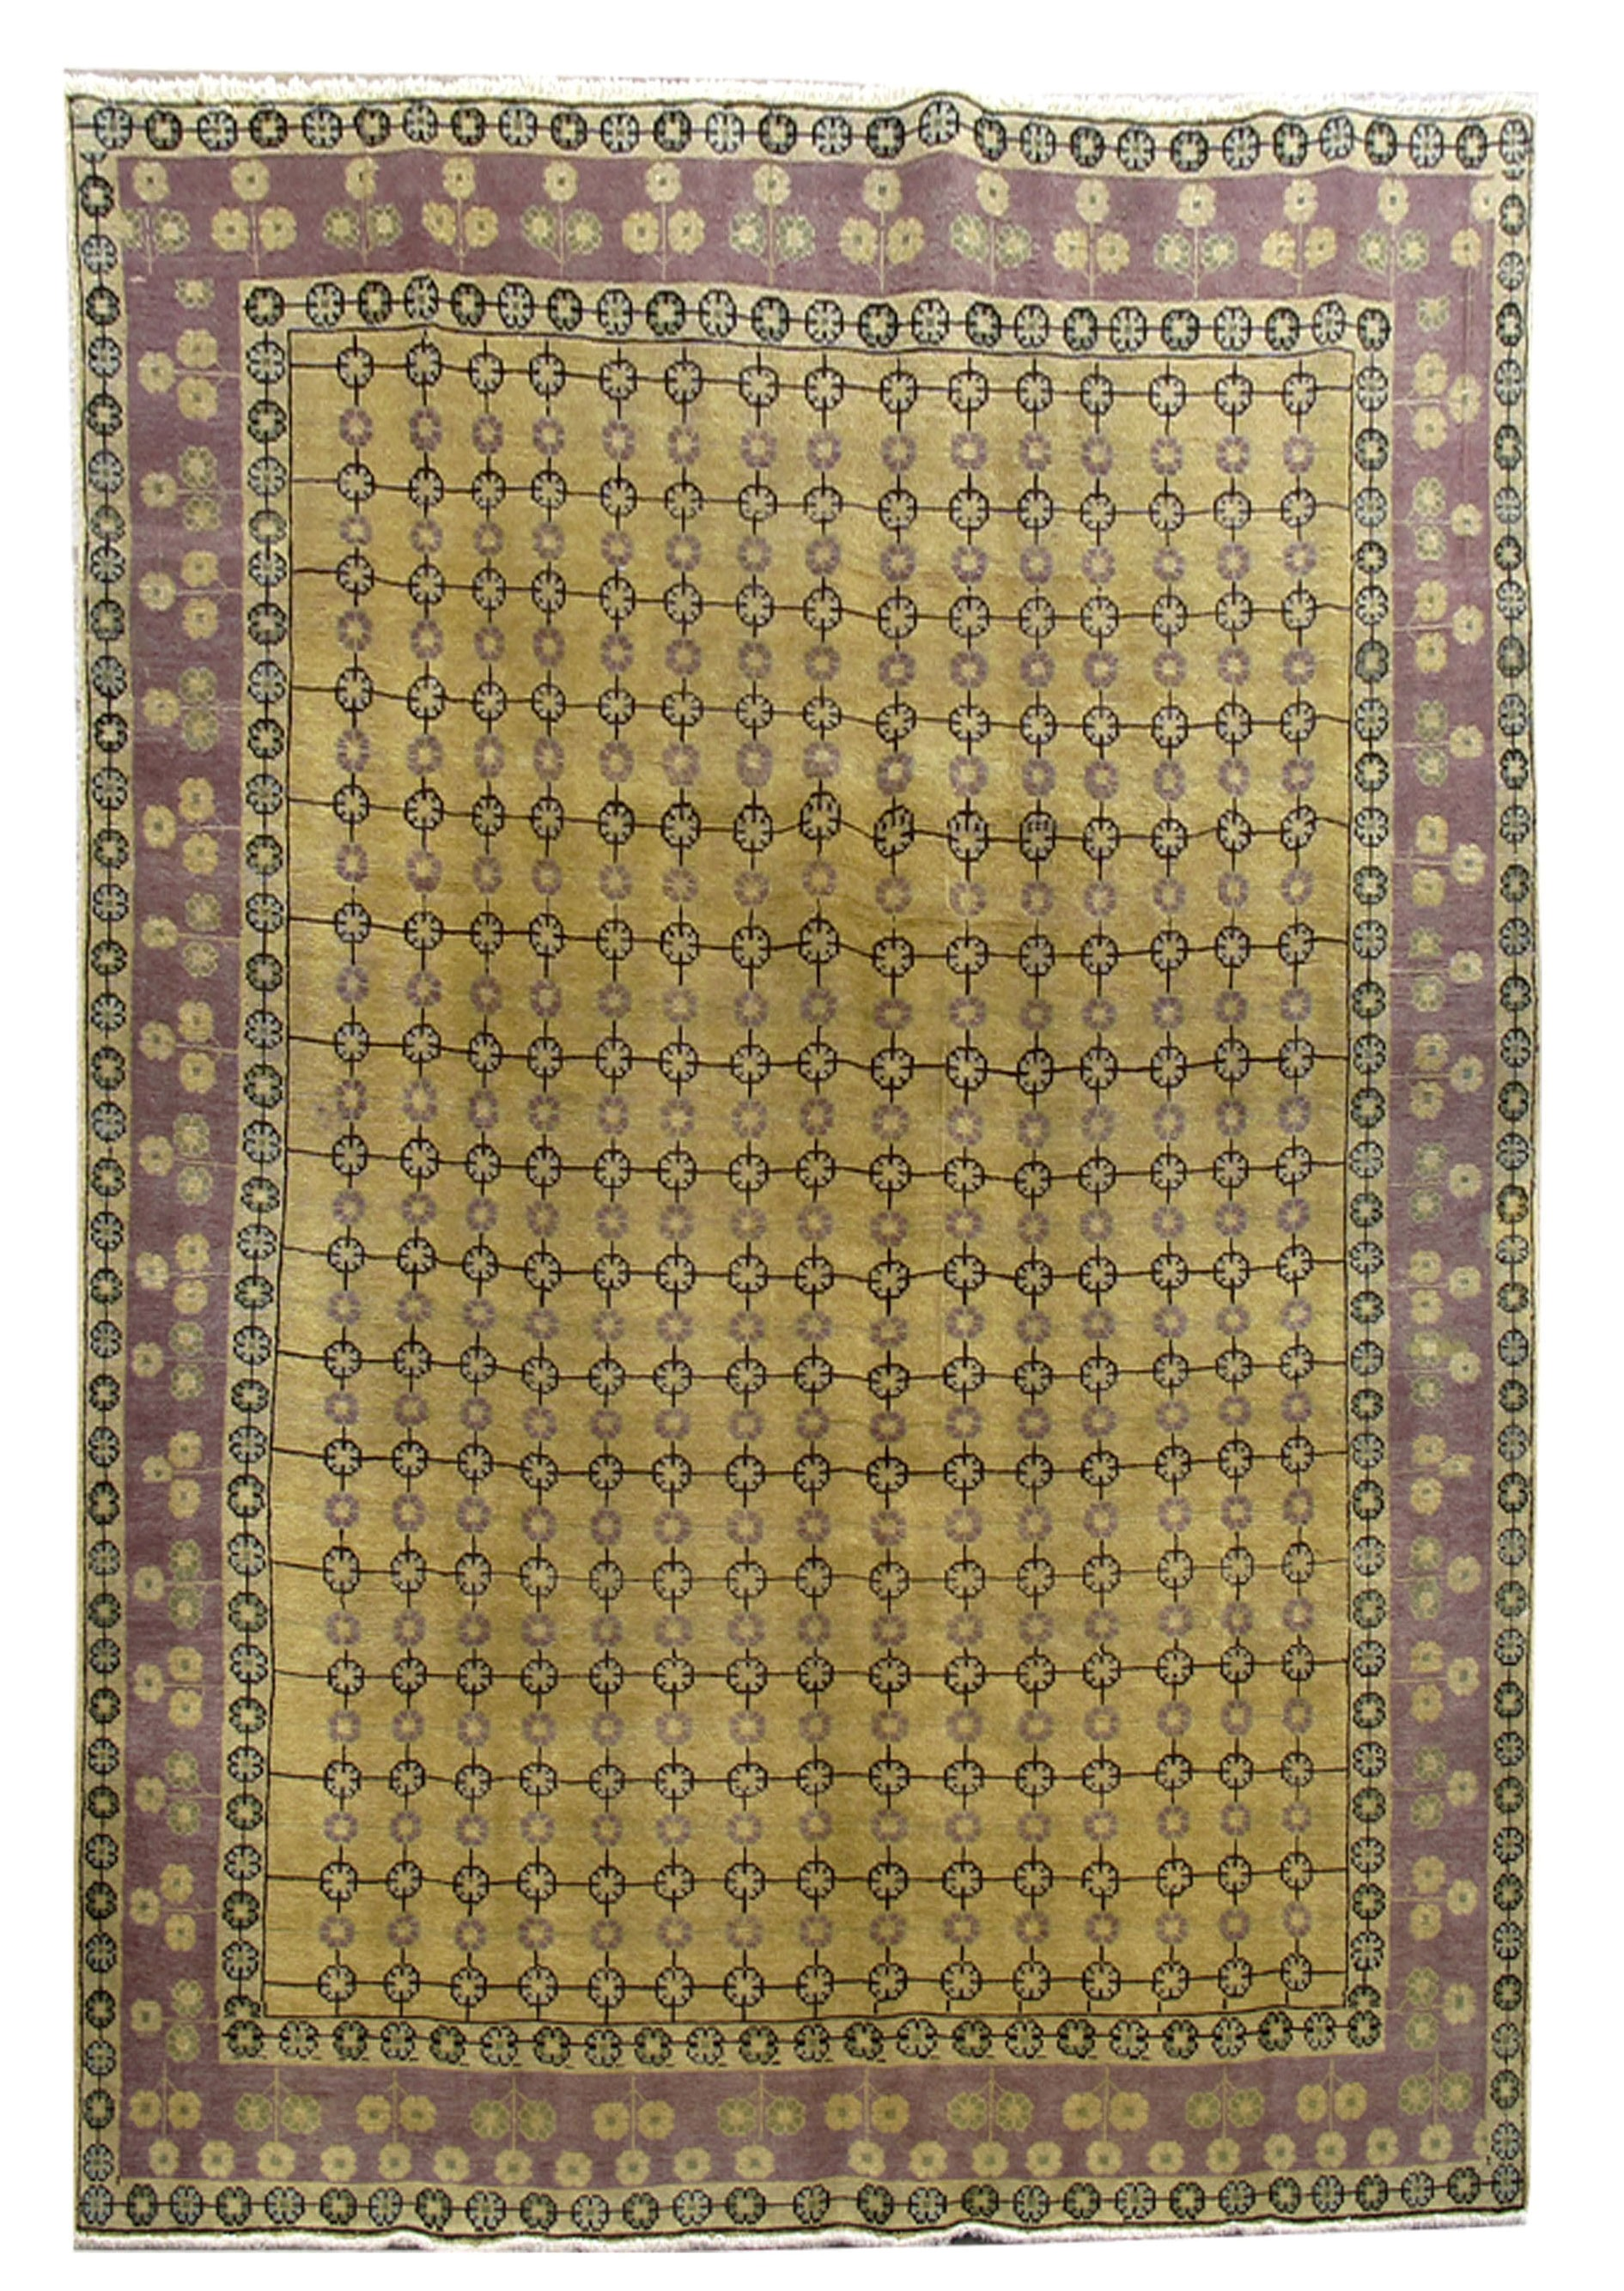 Living room hand knotted rug 6x9 persian tabriz wool on for Living room rugs 6x9